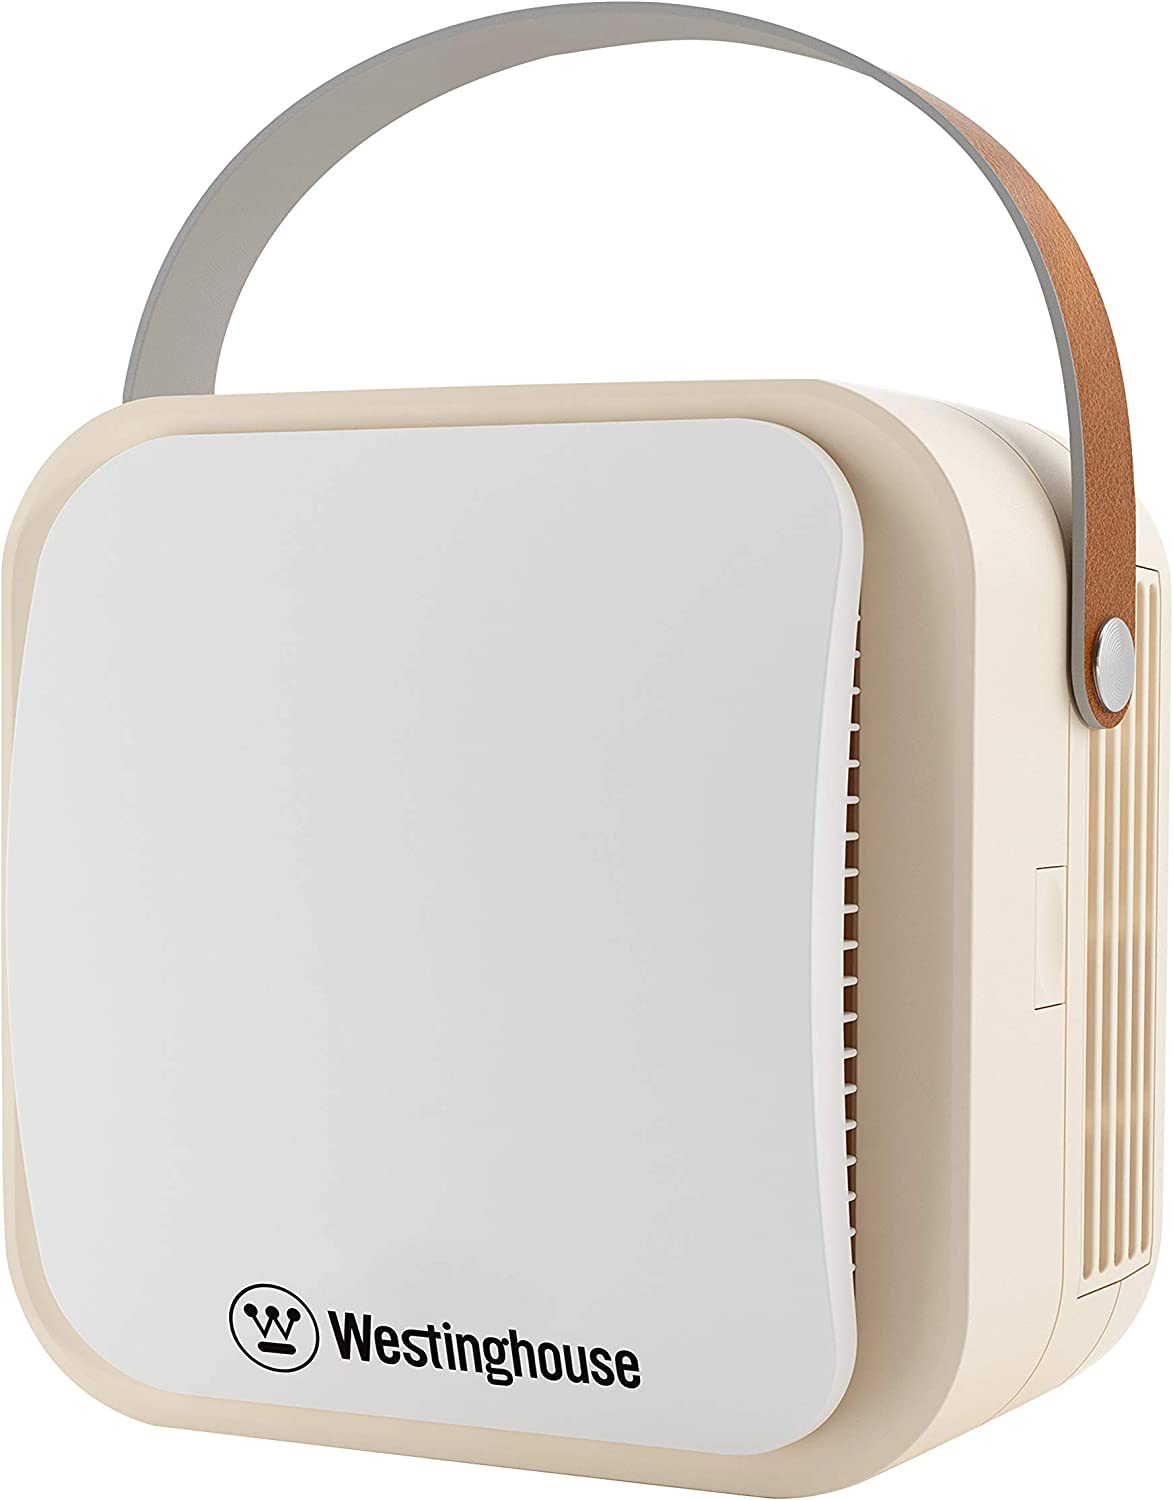 Westinghouse 1804 Portable Air Purifier with True HEPA Filter & NCCO Technology - Kills, Sanitizes, and Removes Bacteria, Viruses, VOCs, Allergens, Dust, Smoke - Ideal for Car, Airplane, Hotels